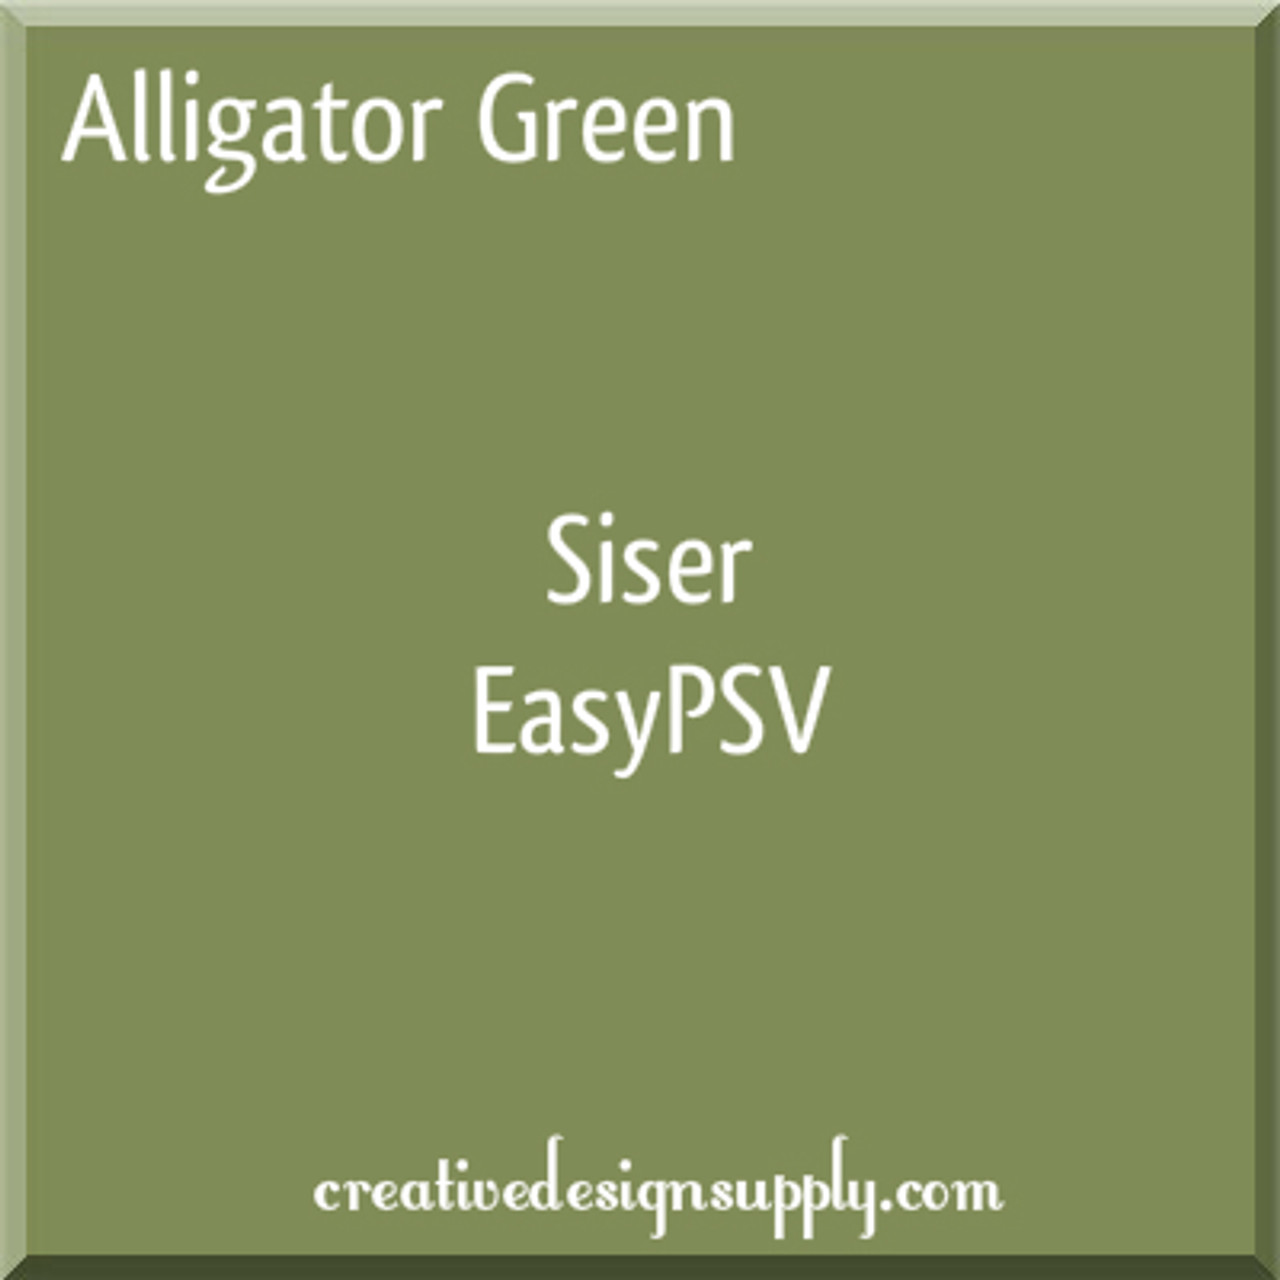 Alligator Green Siser EasyPSV